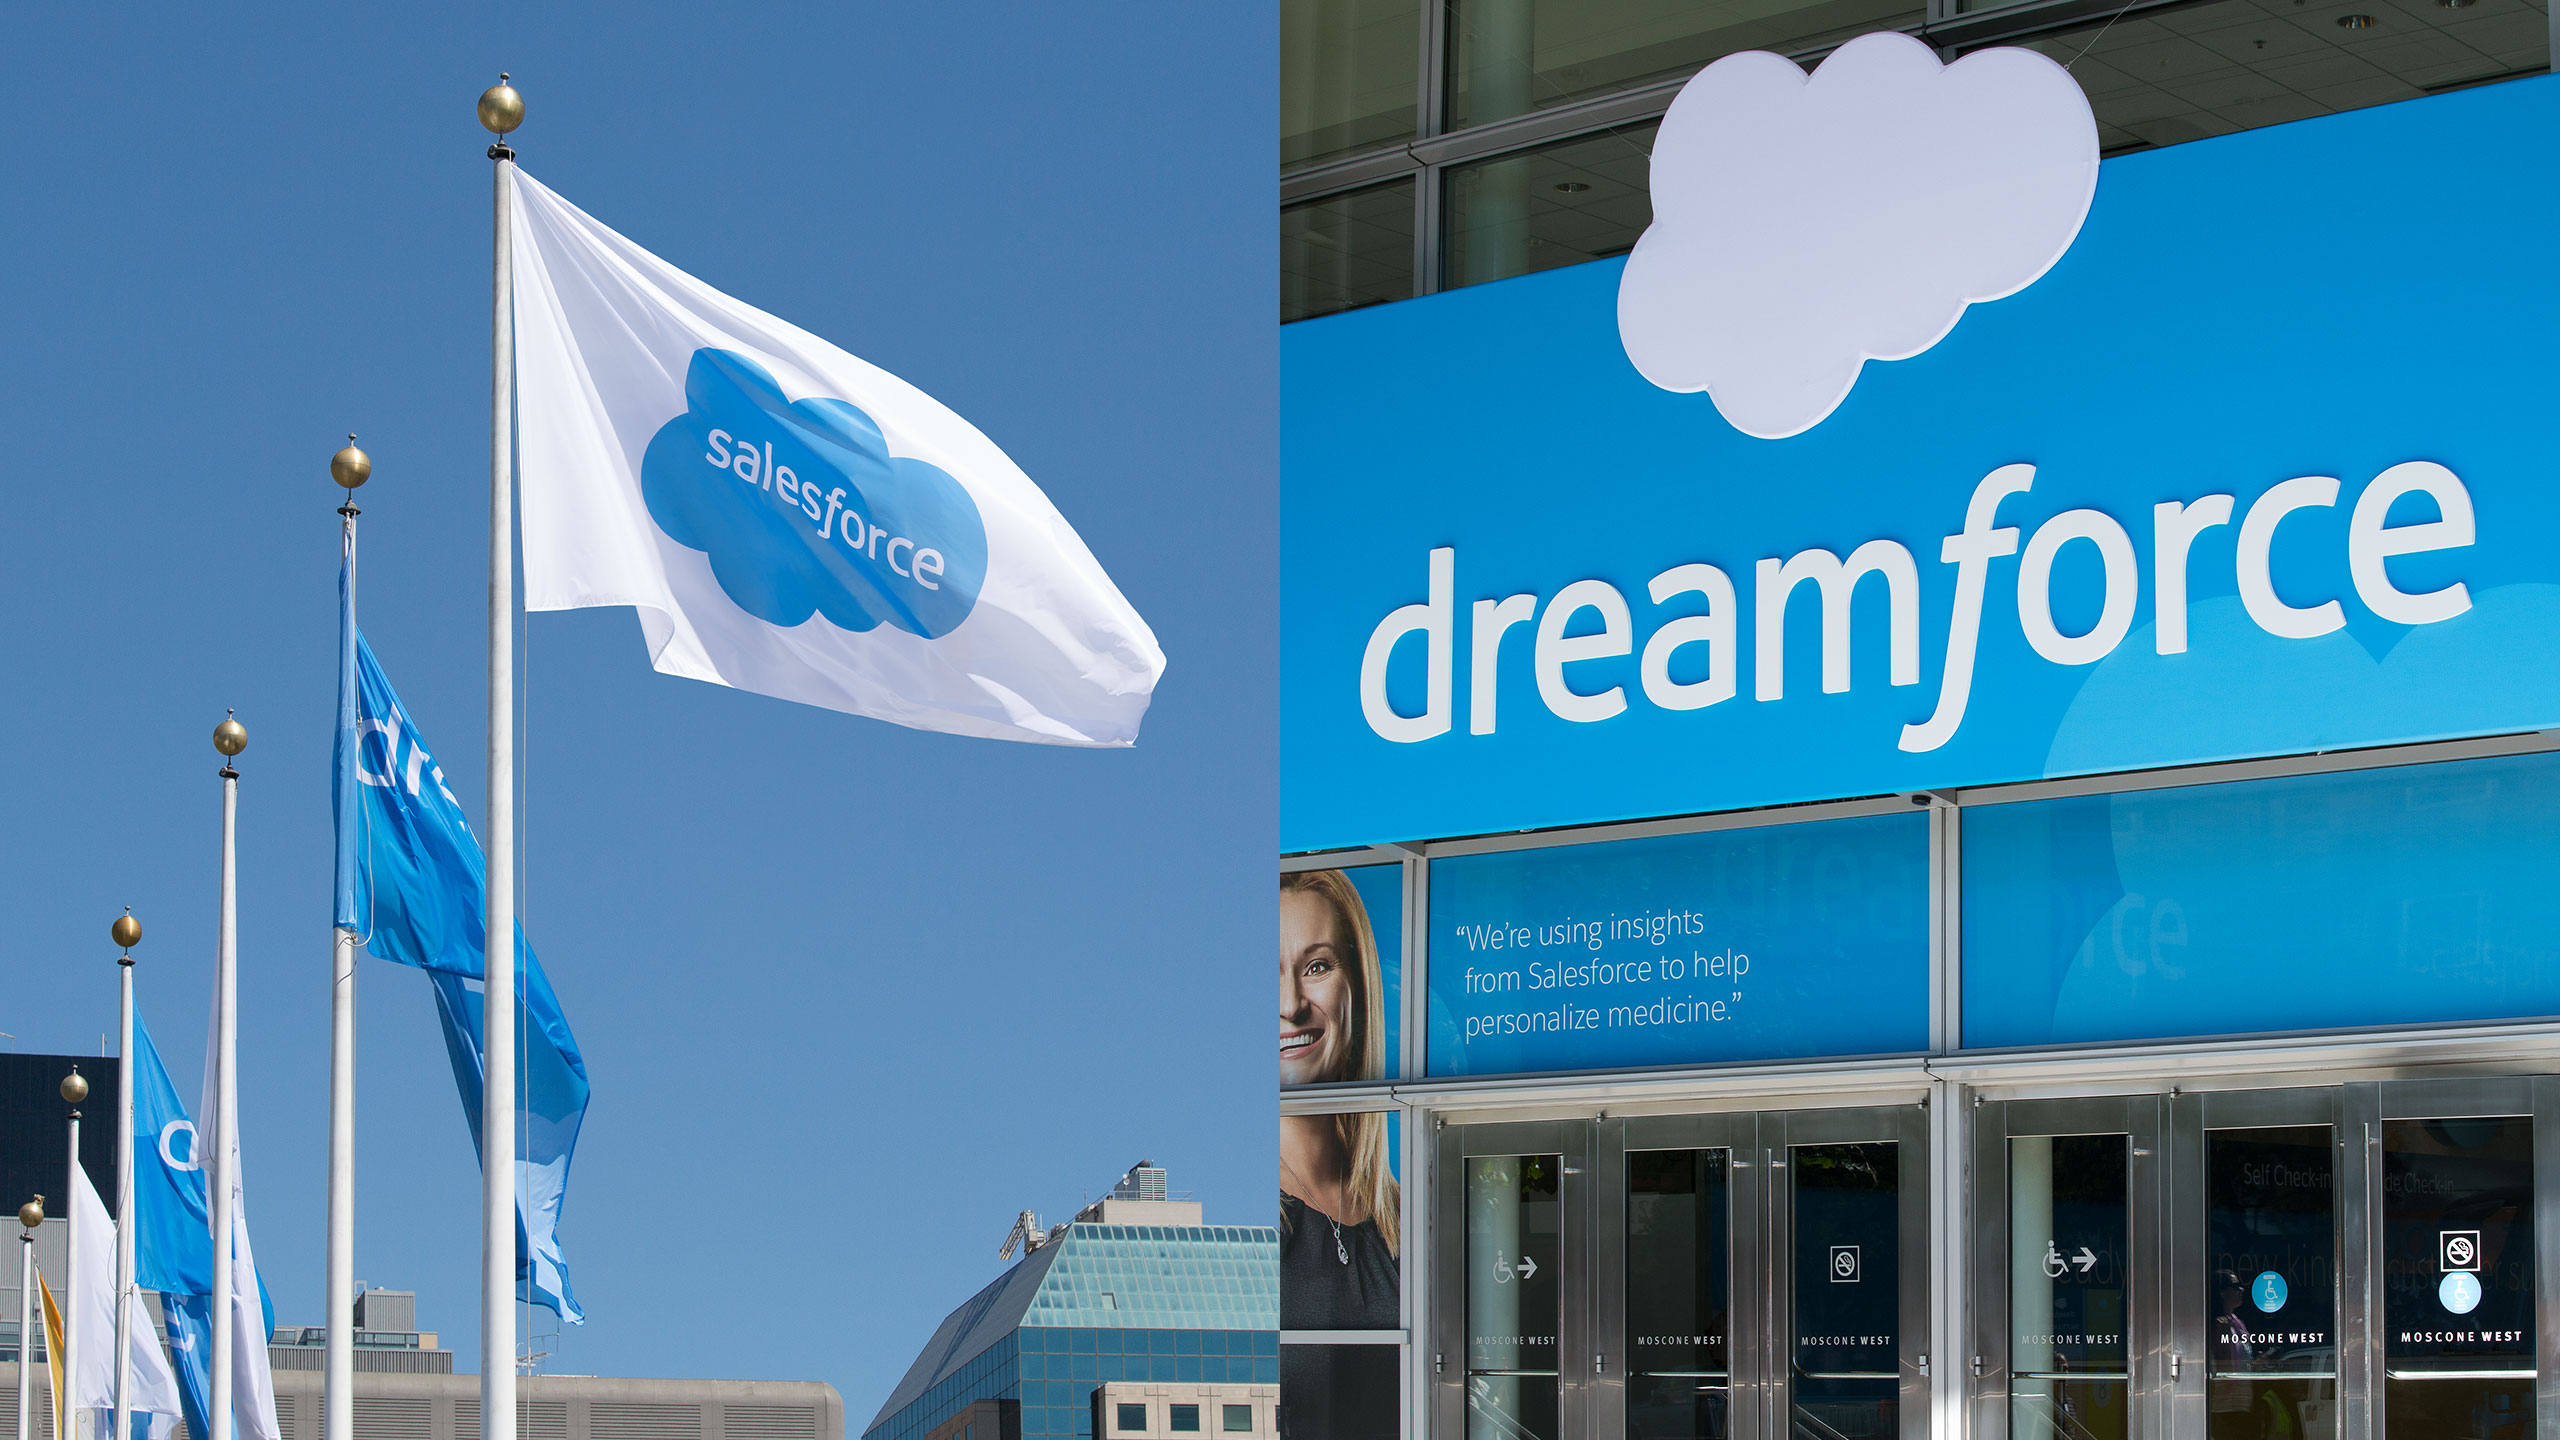 salesforce-brand-applications-flag-dreamforce-signage-2up